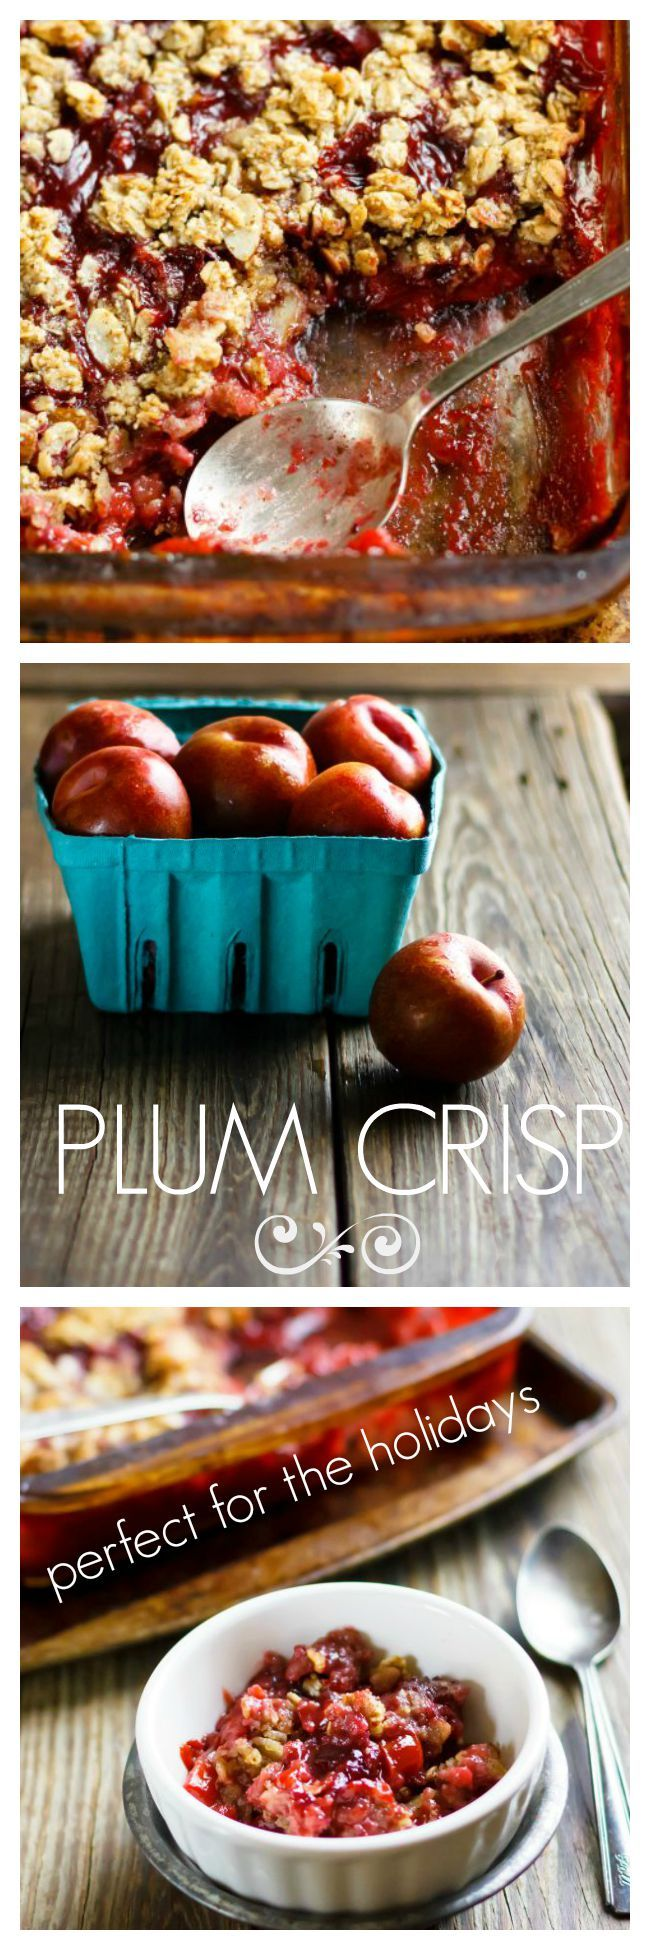 Holiday Perfect Plum Crisp | eat healthy eat happy | NO ONE will guess it's healthy!